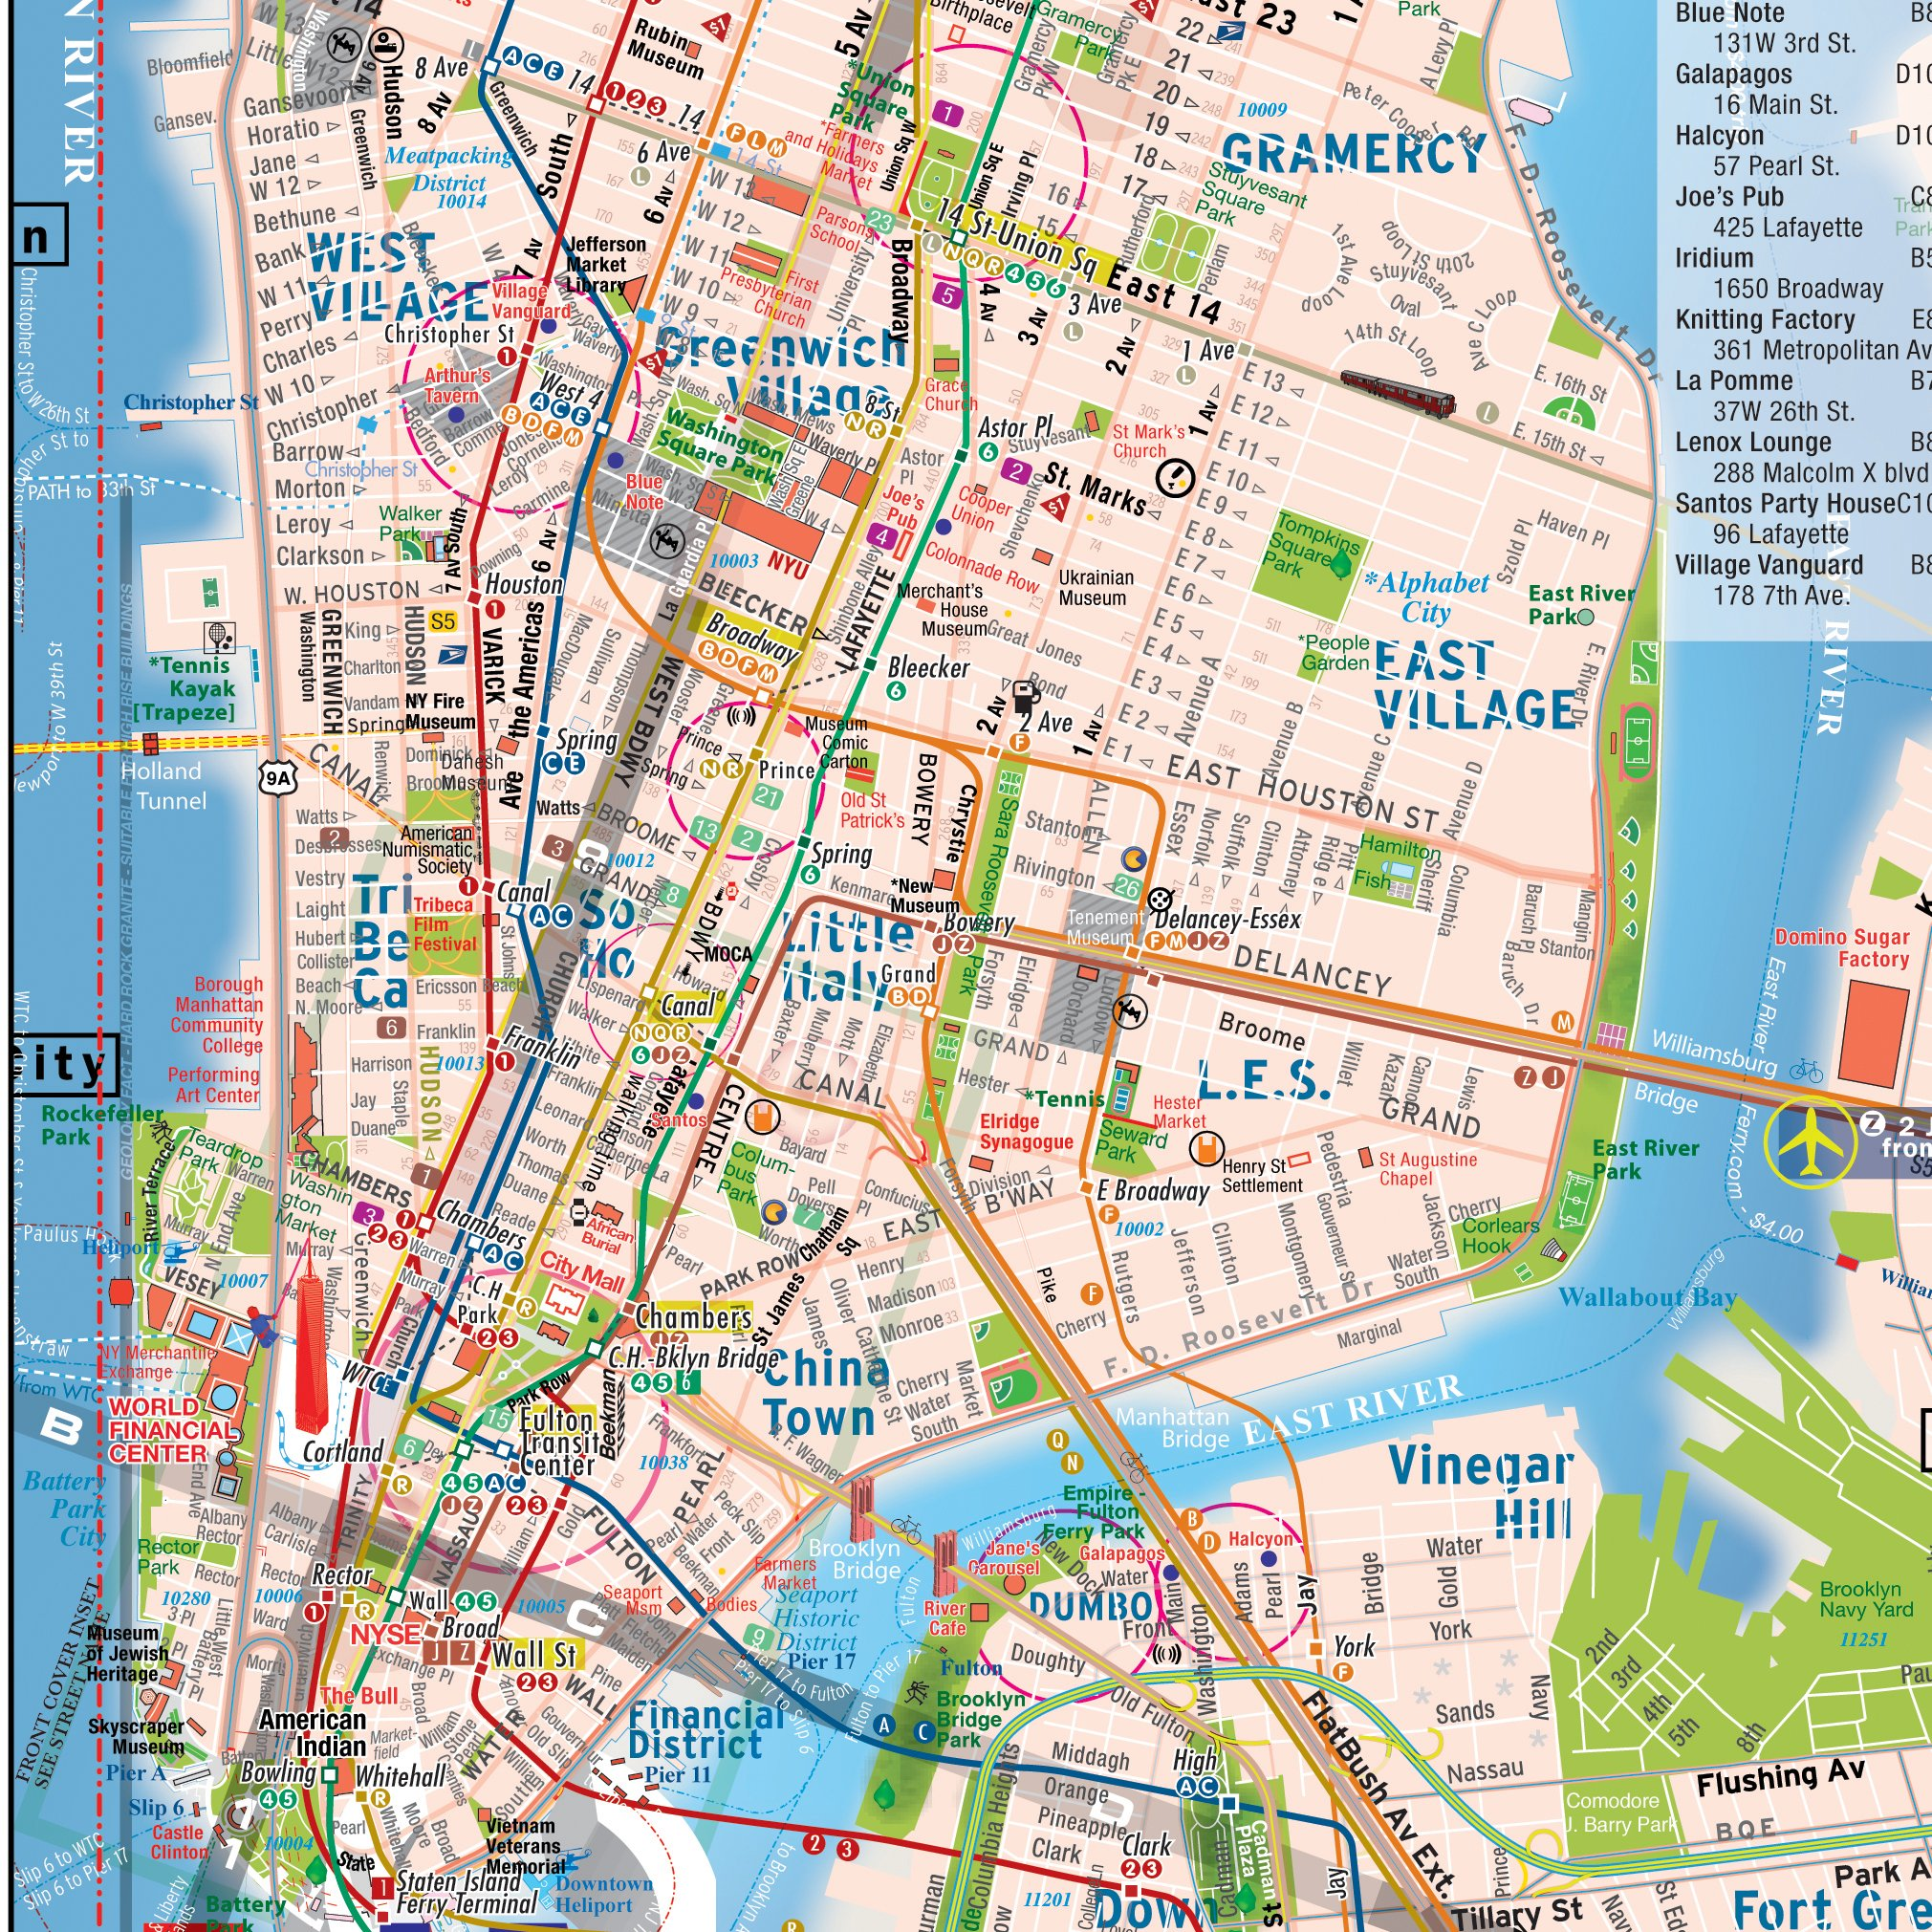 Subway Map In Manhatten.Terramaps Nyc Manhattan Street And Subway Map Waterproof Pocket